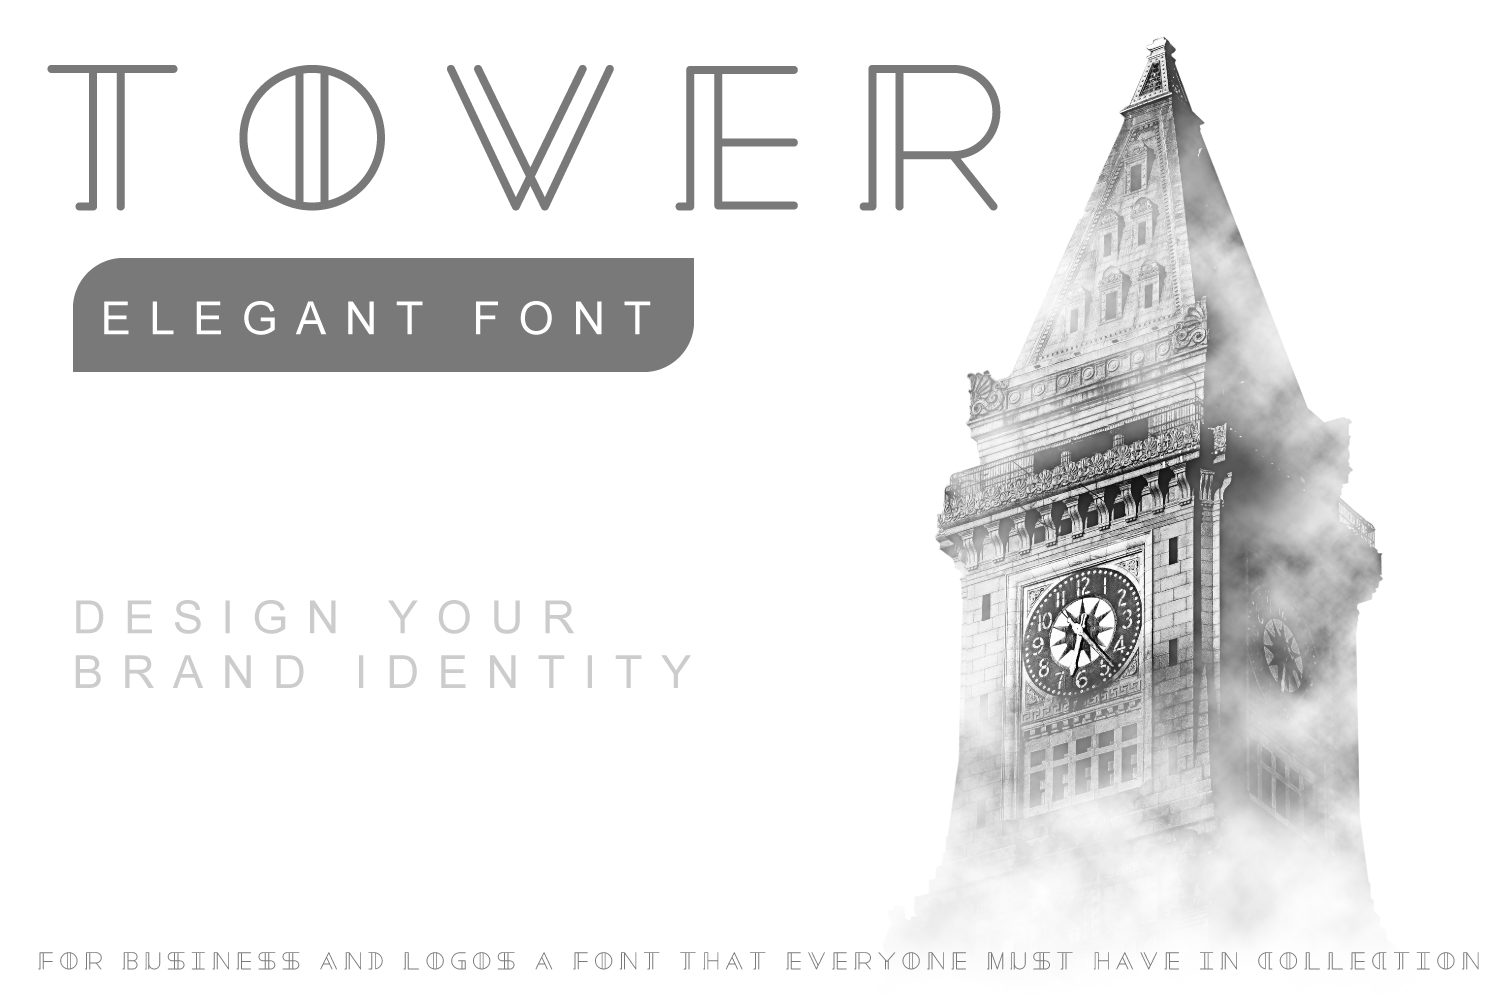 Tower - Minimal Brand Font  example image 1